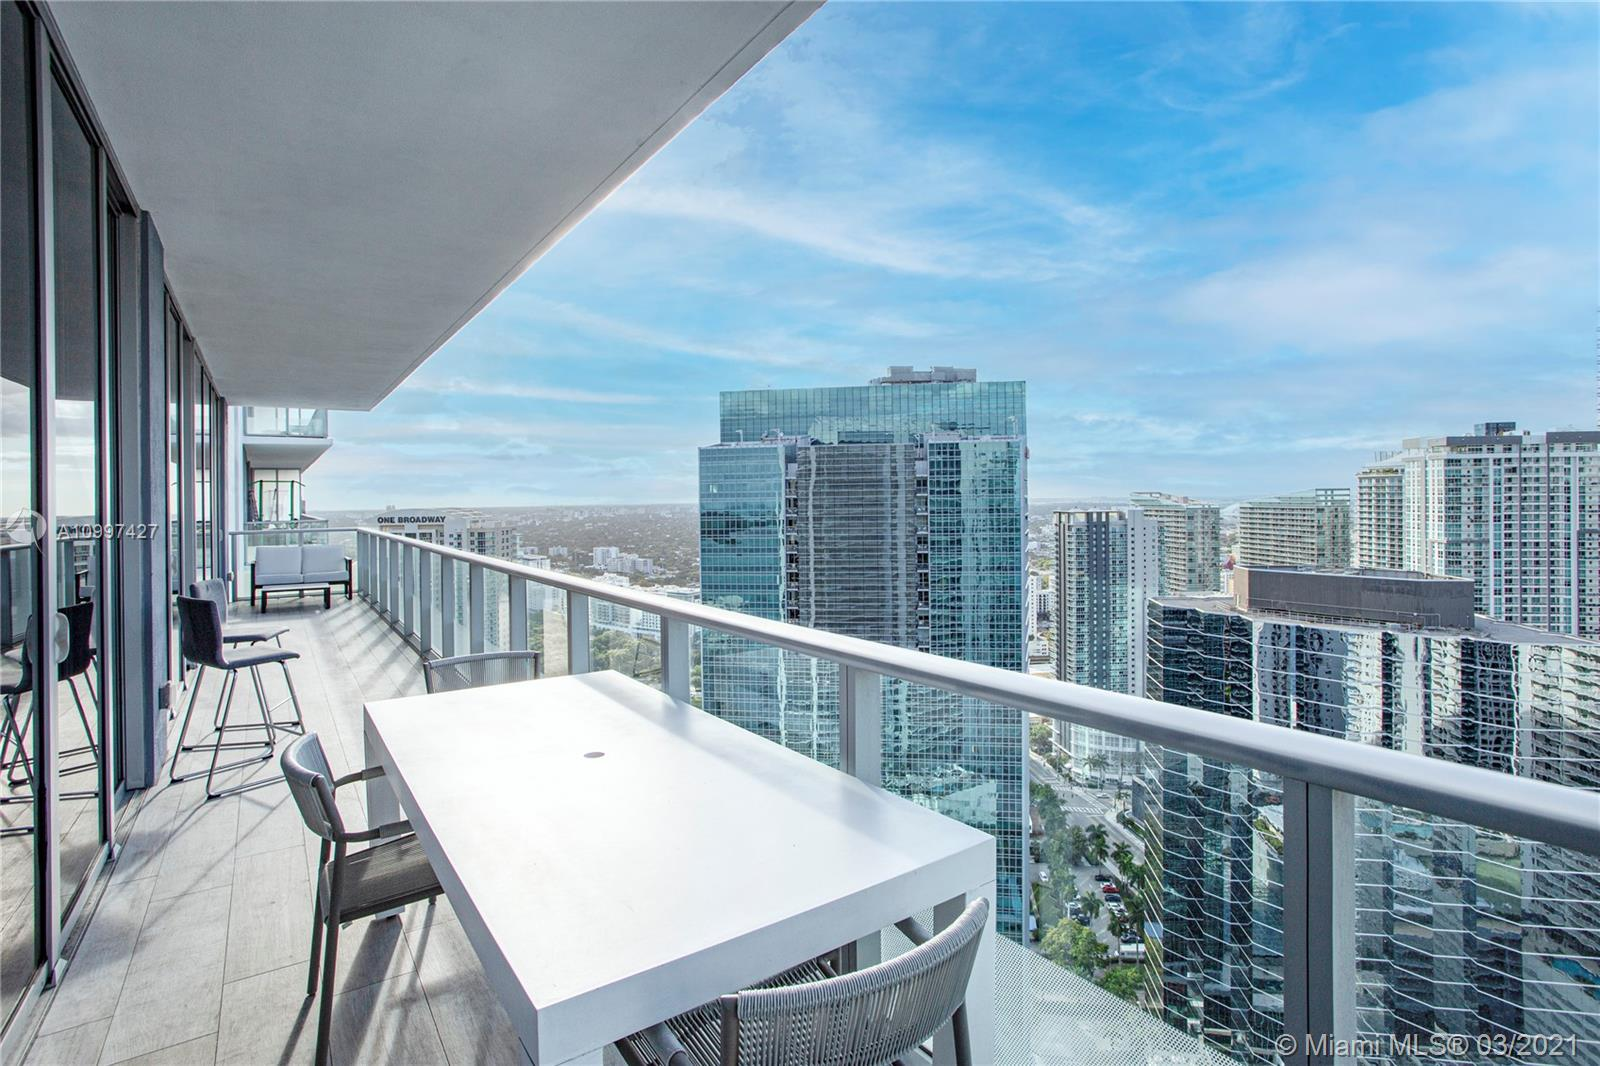 Exclusive Brickellhouse 2 Bedroom 2.5 + Den apartment with incredible views of the bay and Brickell skyline. Fully equipped with top appliances and cabinet, custom closets and blackout window treatments. Amenities include to pools, 24 concierge and security, fitness center, spa, valet, club room, kids lounge, theater bbq, cabanas. Enjoy one of Miami finest.